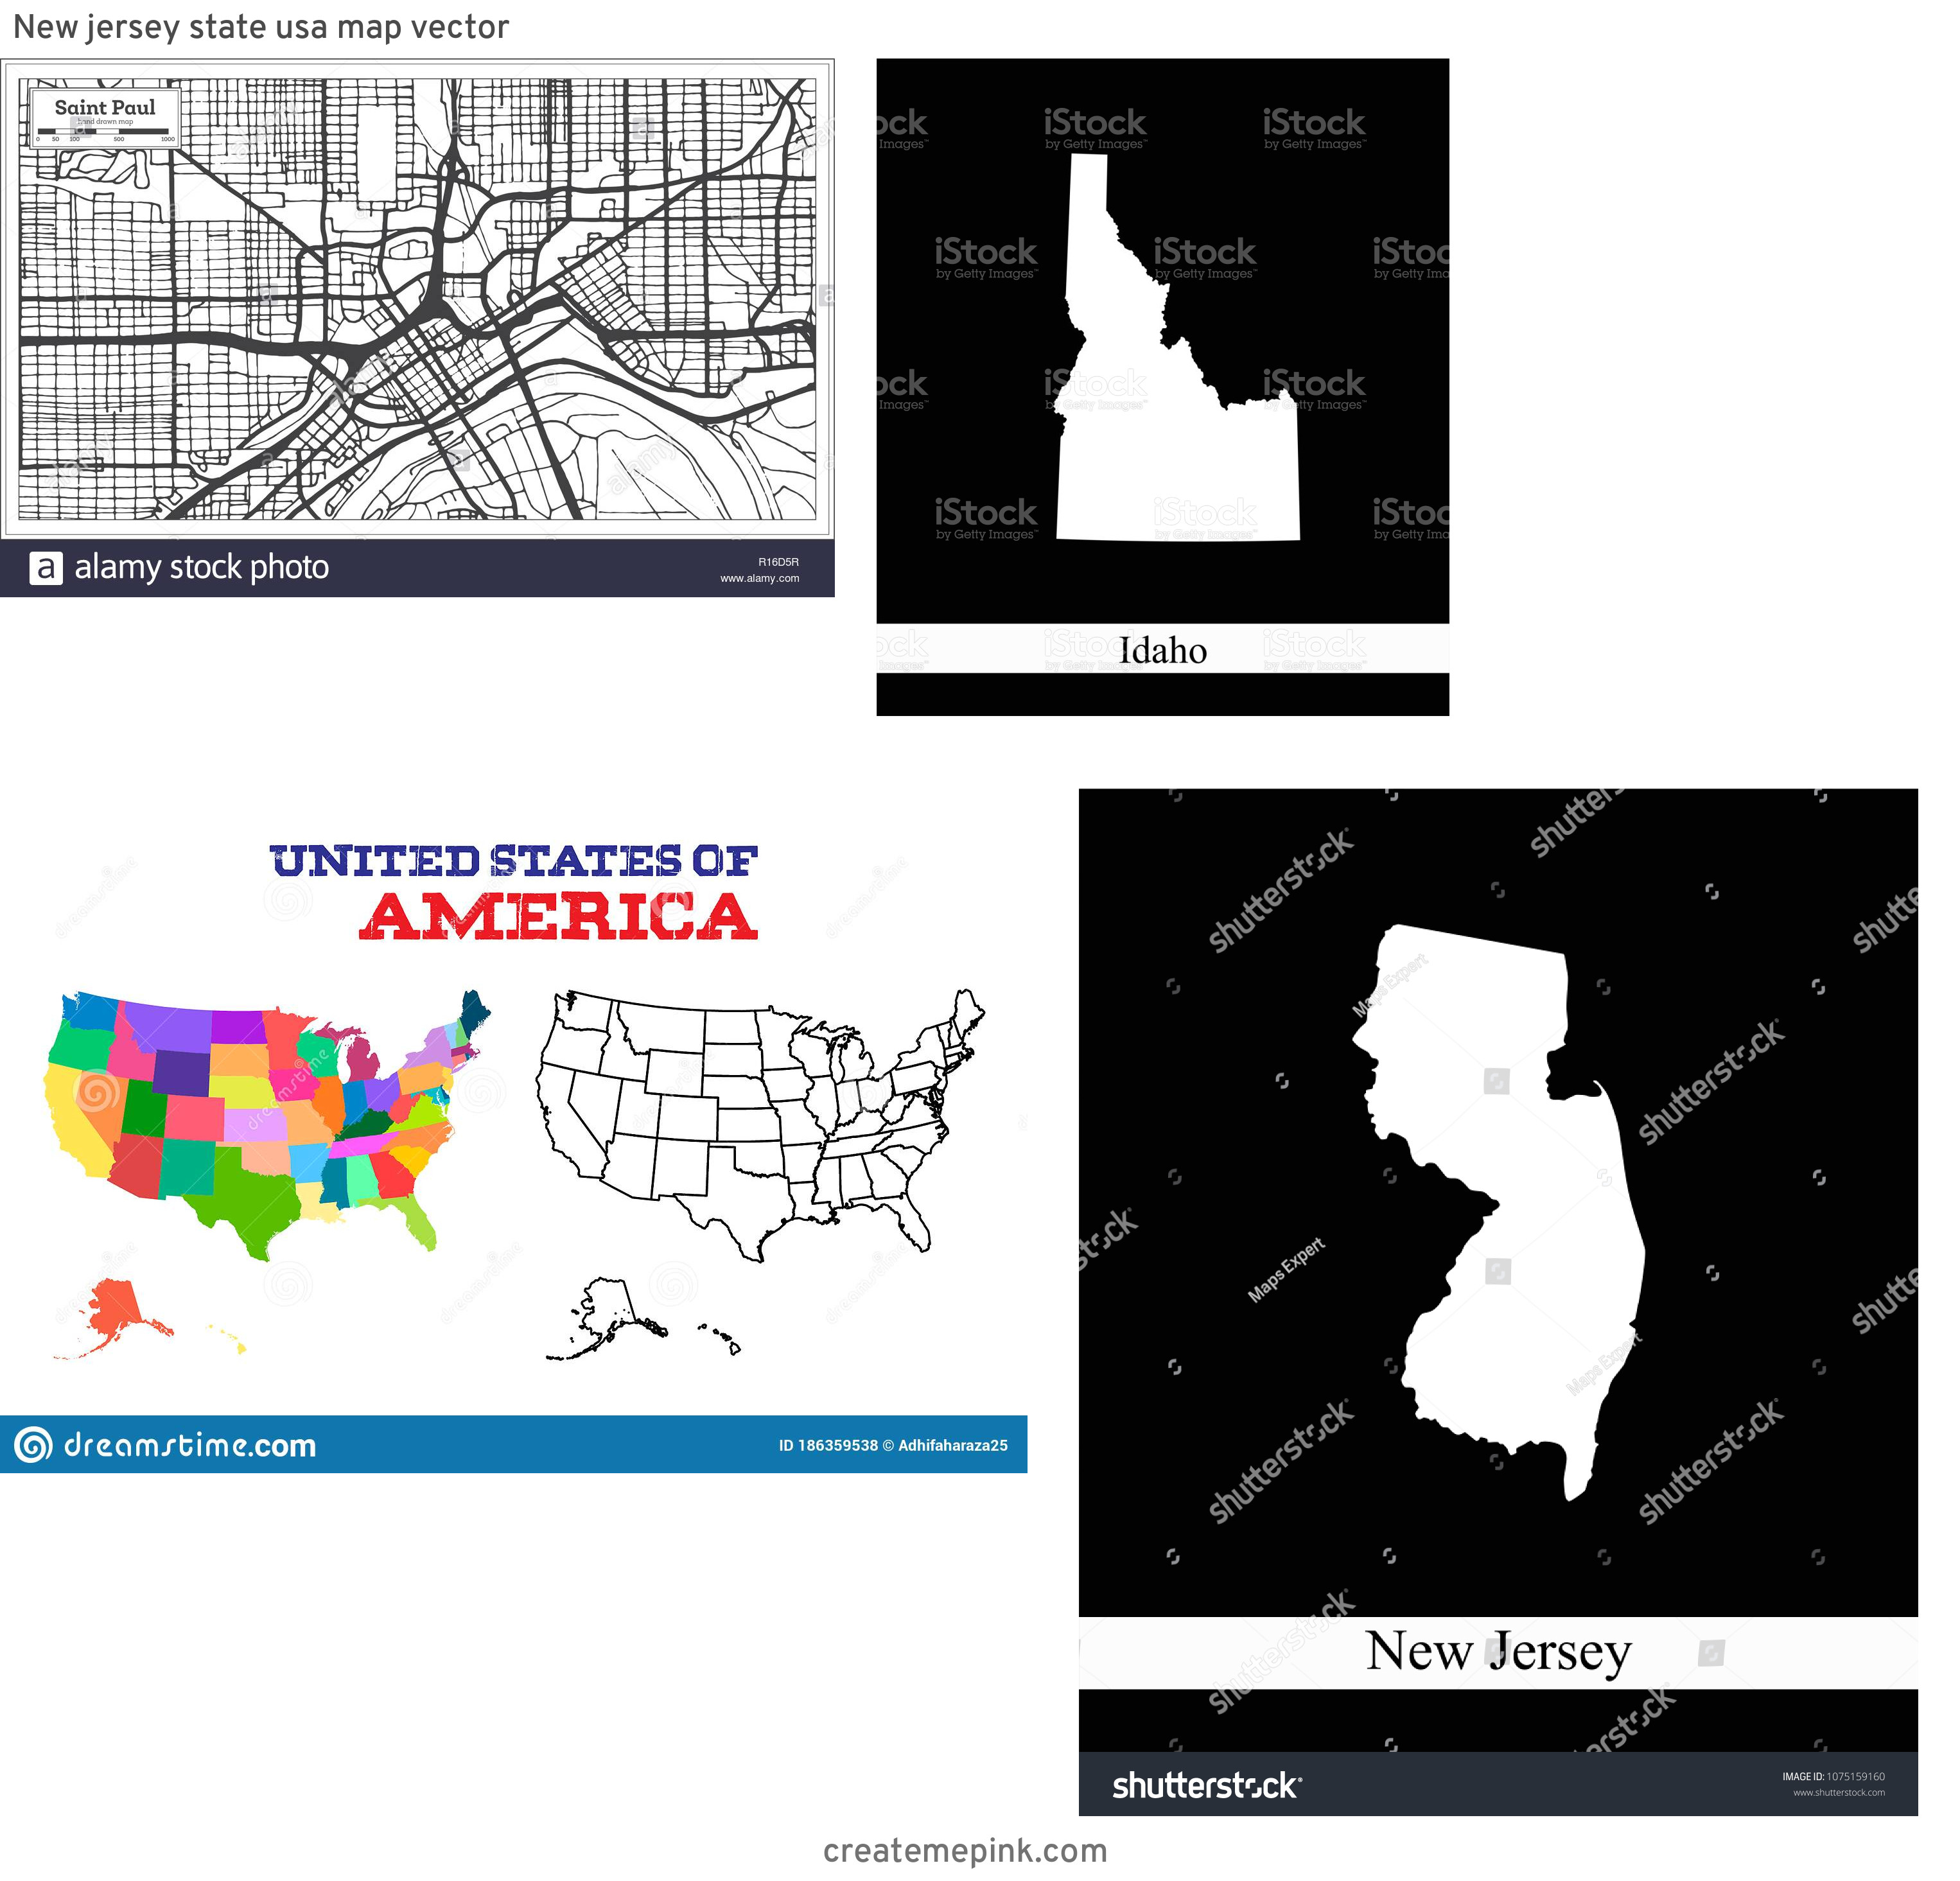 USA Map Vector Black: New Jersey State Usa Map Vector